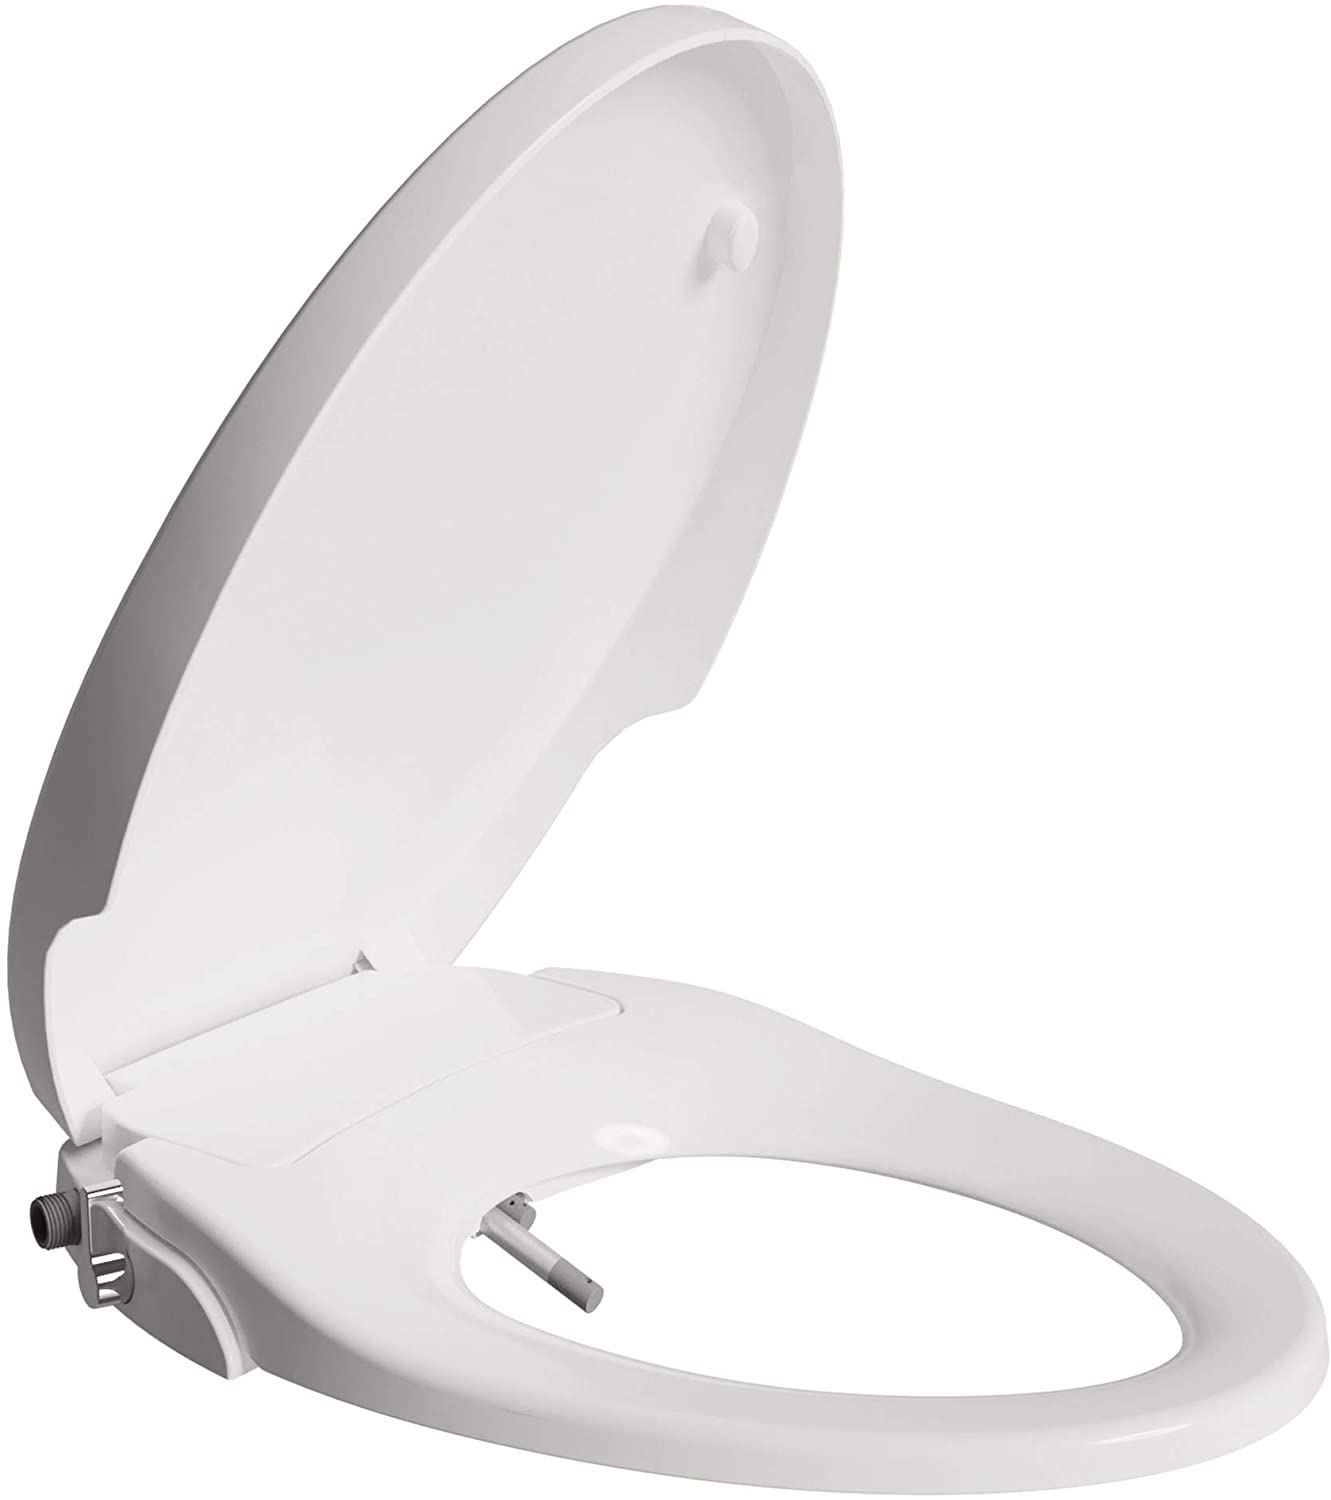 ANZZI HAL Soft Close Dual Nozzle Non Electric Manual Bidet for Elongated Toilet Seat in White | Feminine Rear Water Pressure Spray Control Lever Handle Bidet for Bathroom | Self Cleaning system